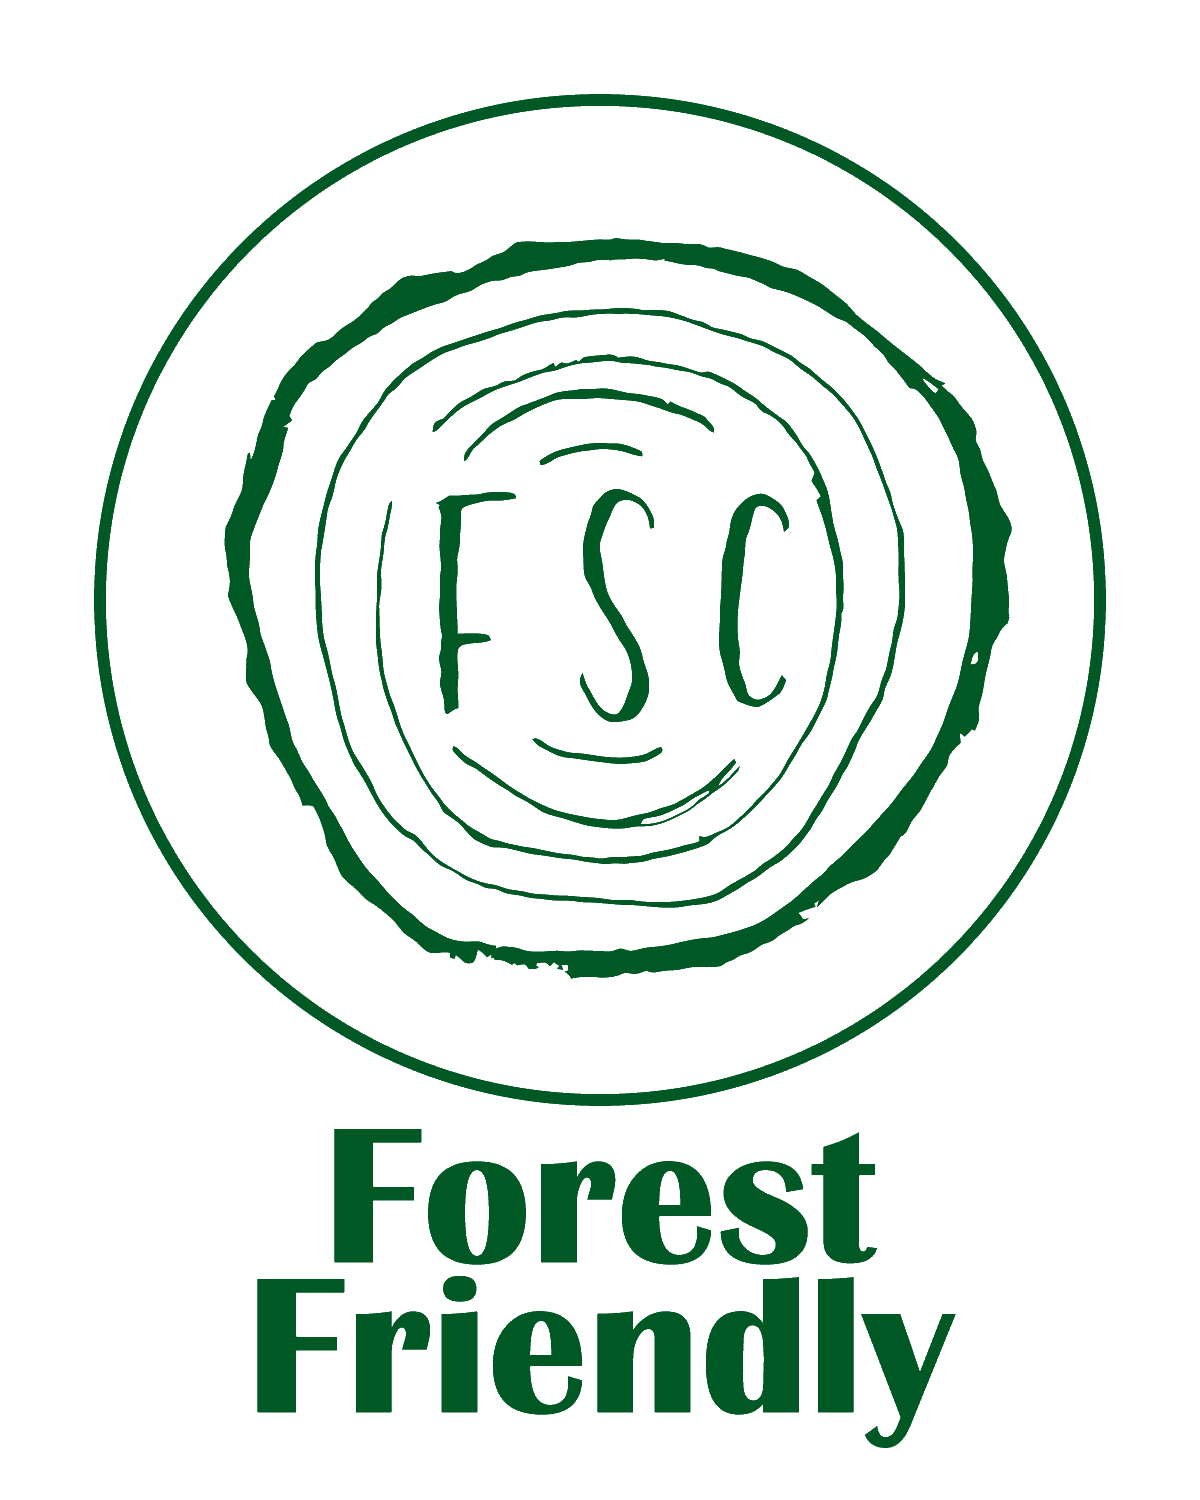 The Green Bundle Forest Friendly Forest Stewardship Council Logo